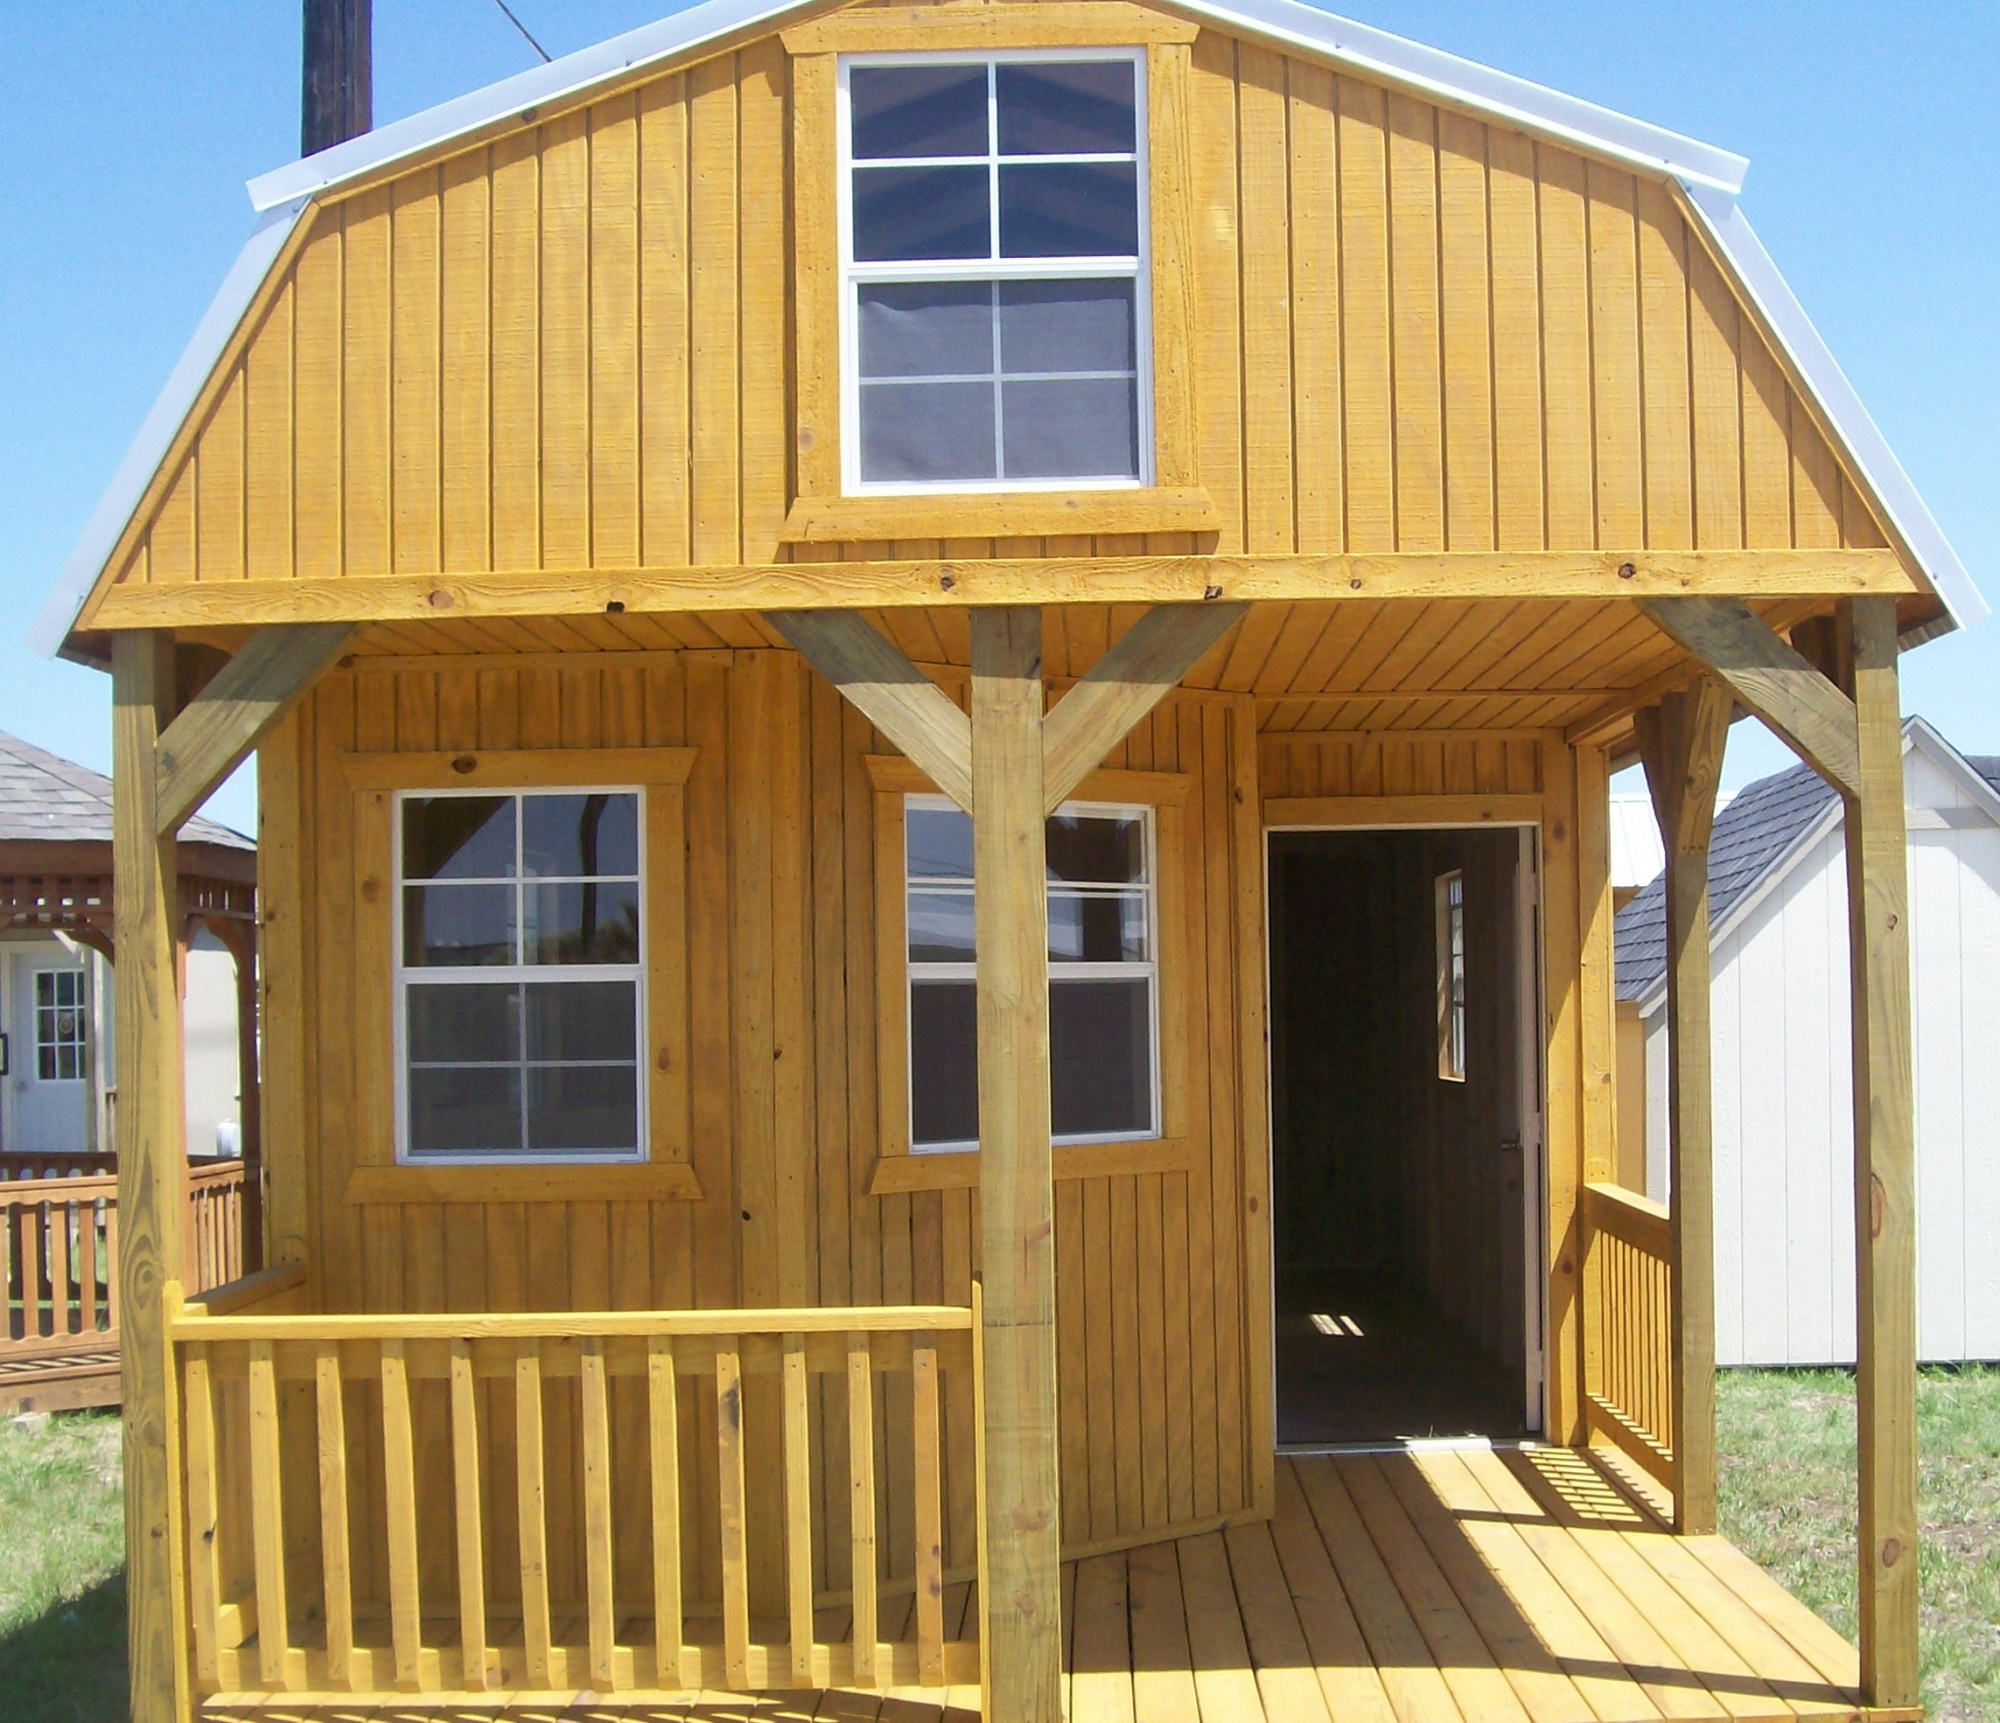 Cabins deluxe cabins lofted barn cabins side lofted barn for Loft cabins